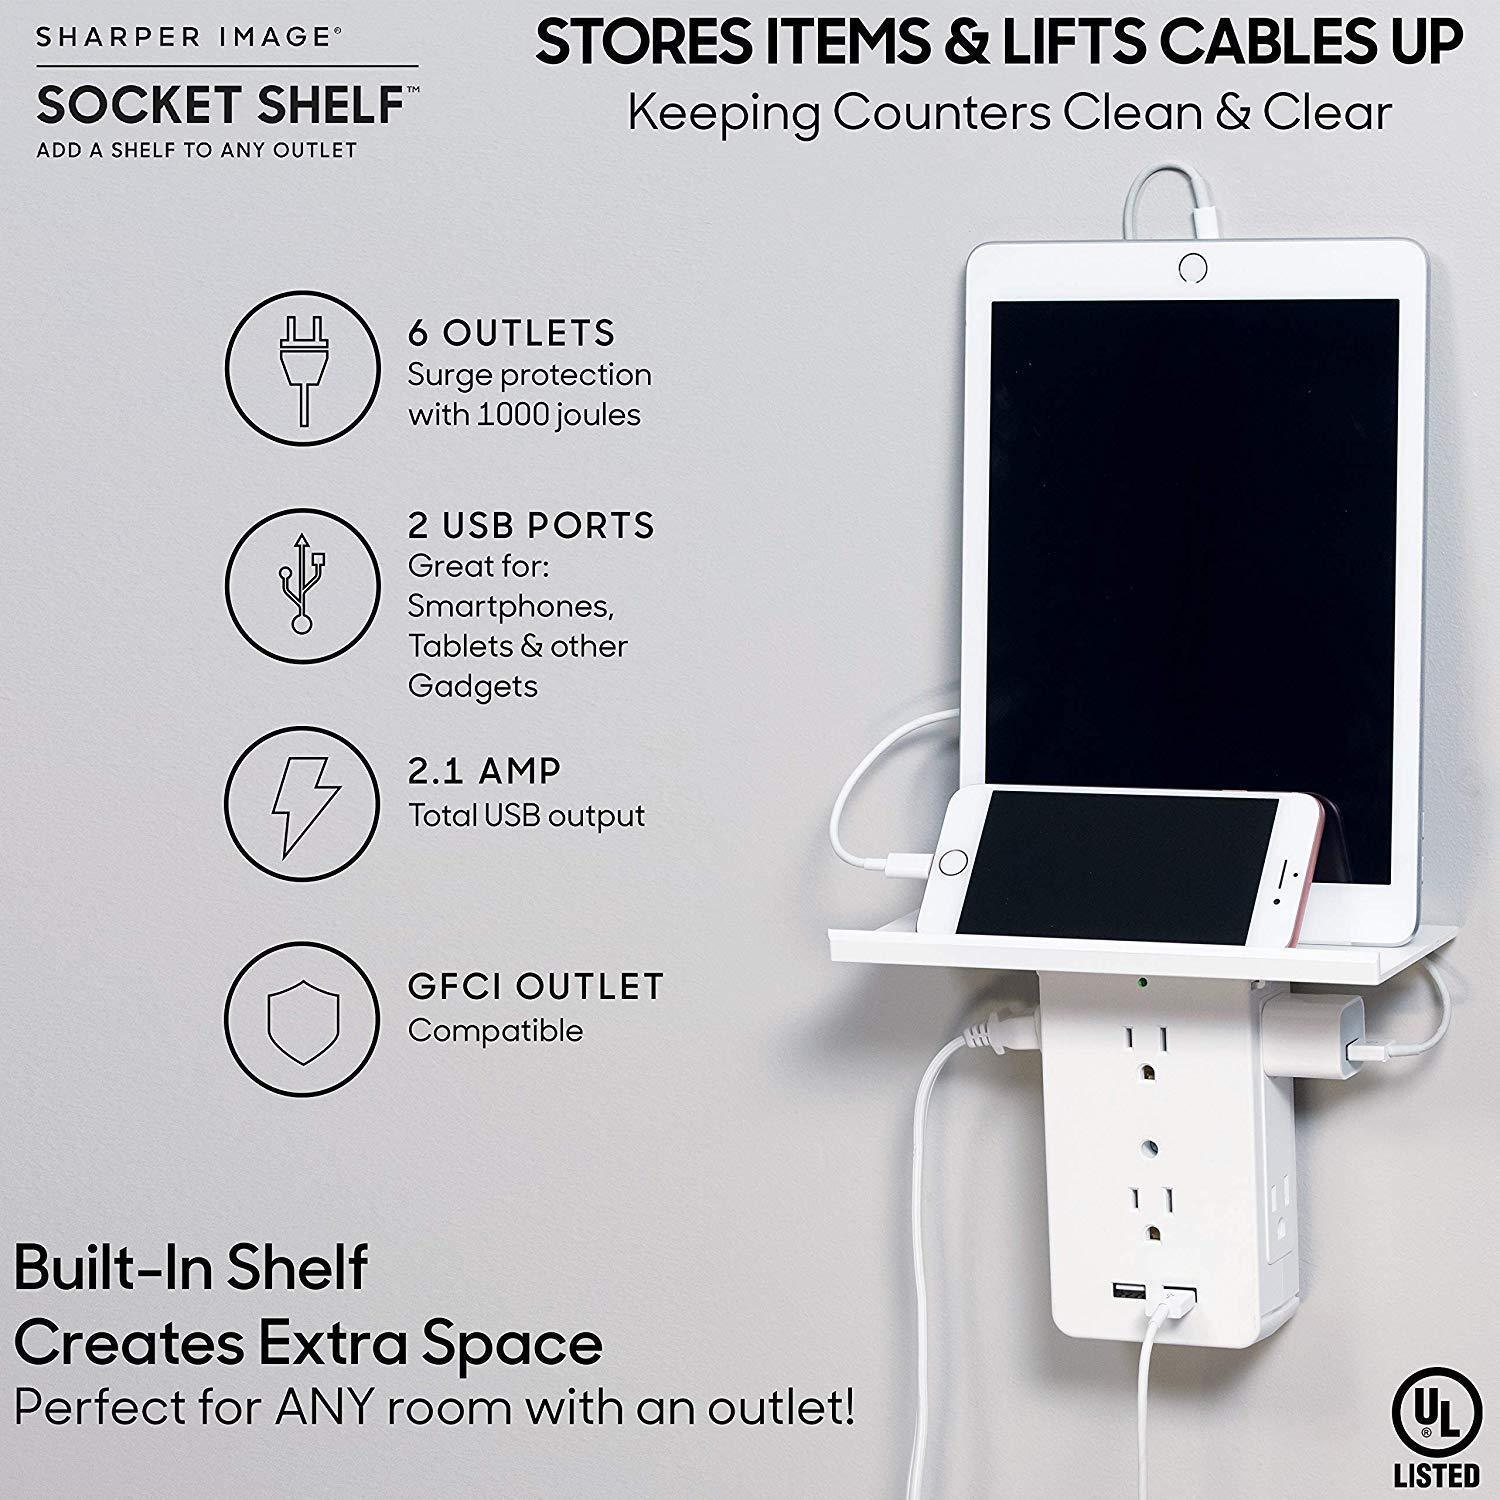 USB Charging Ports & Removable Built-In Shelf